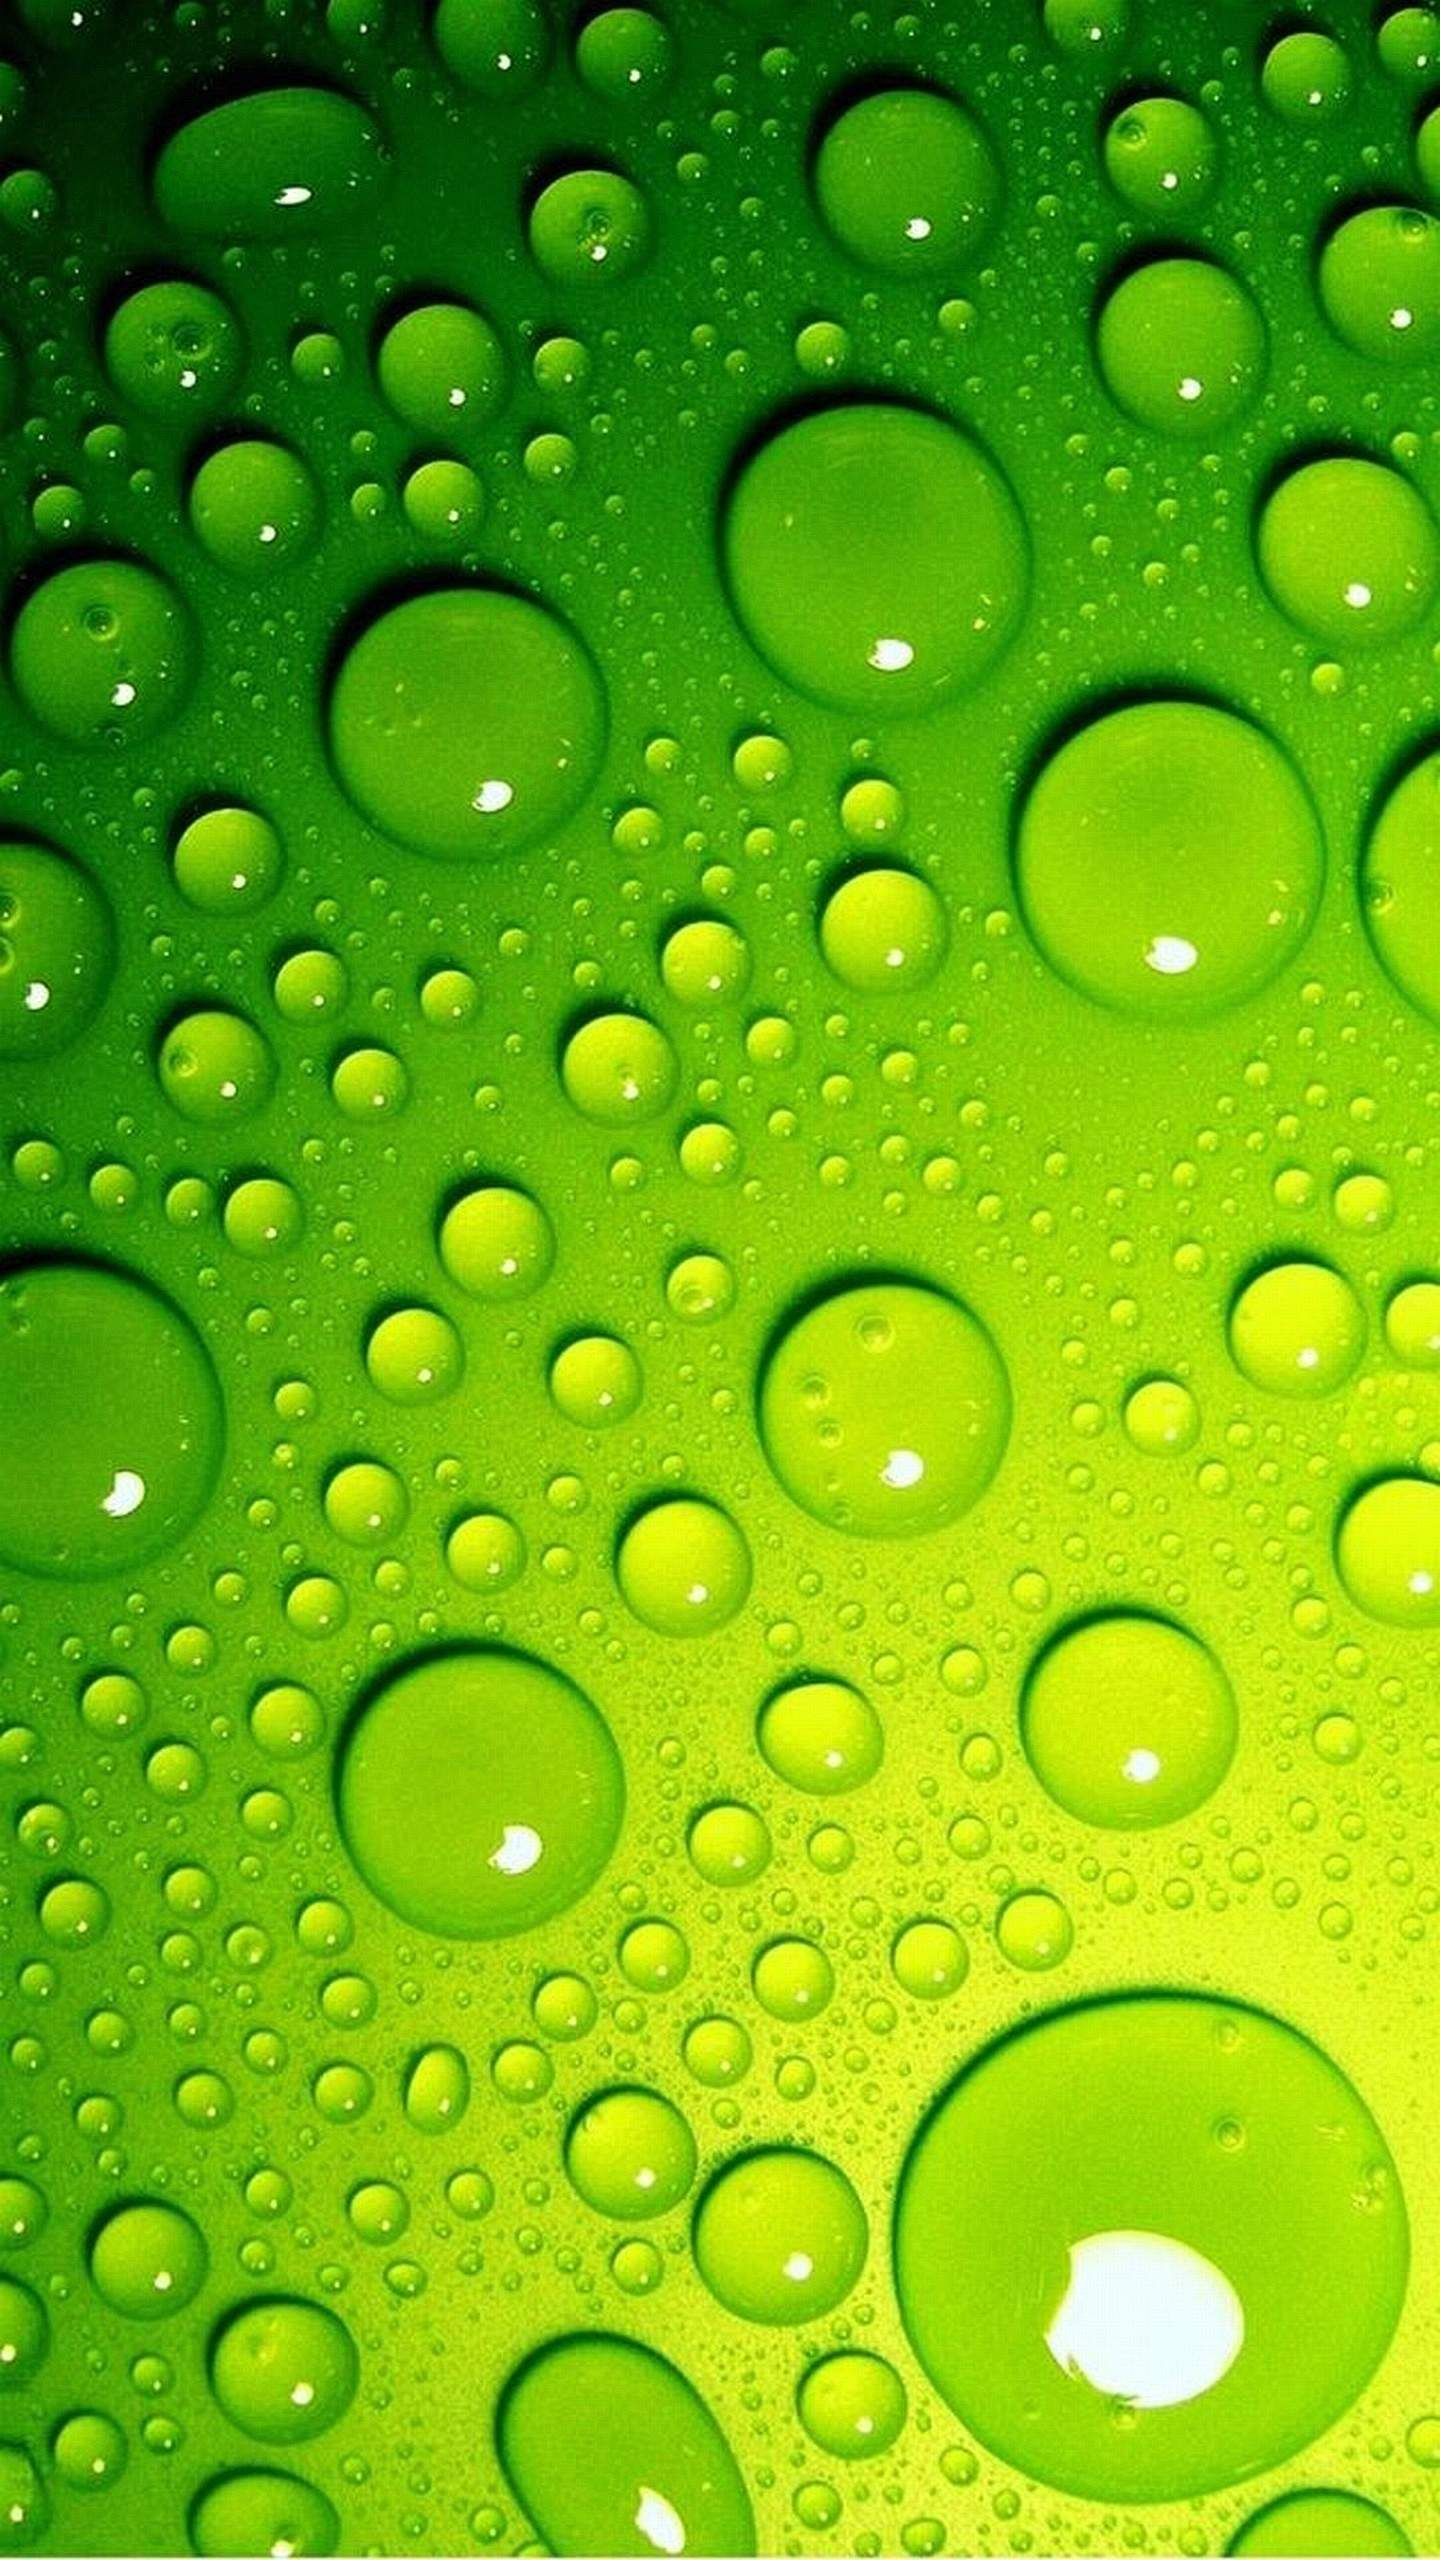 3d Leaves And Water Drop Wallpaper Cult Of Android 20 Colorful Wallpapers For Your Quad Hd